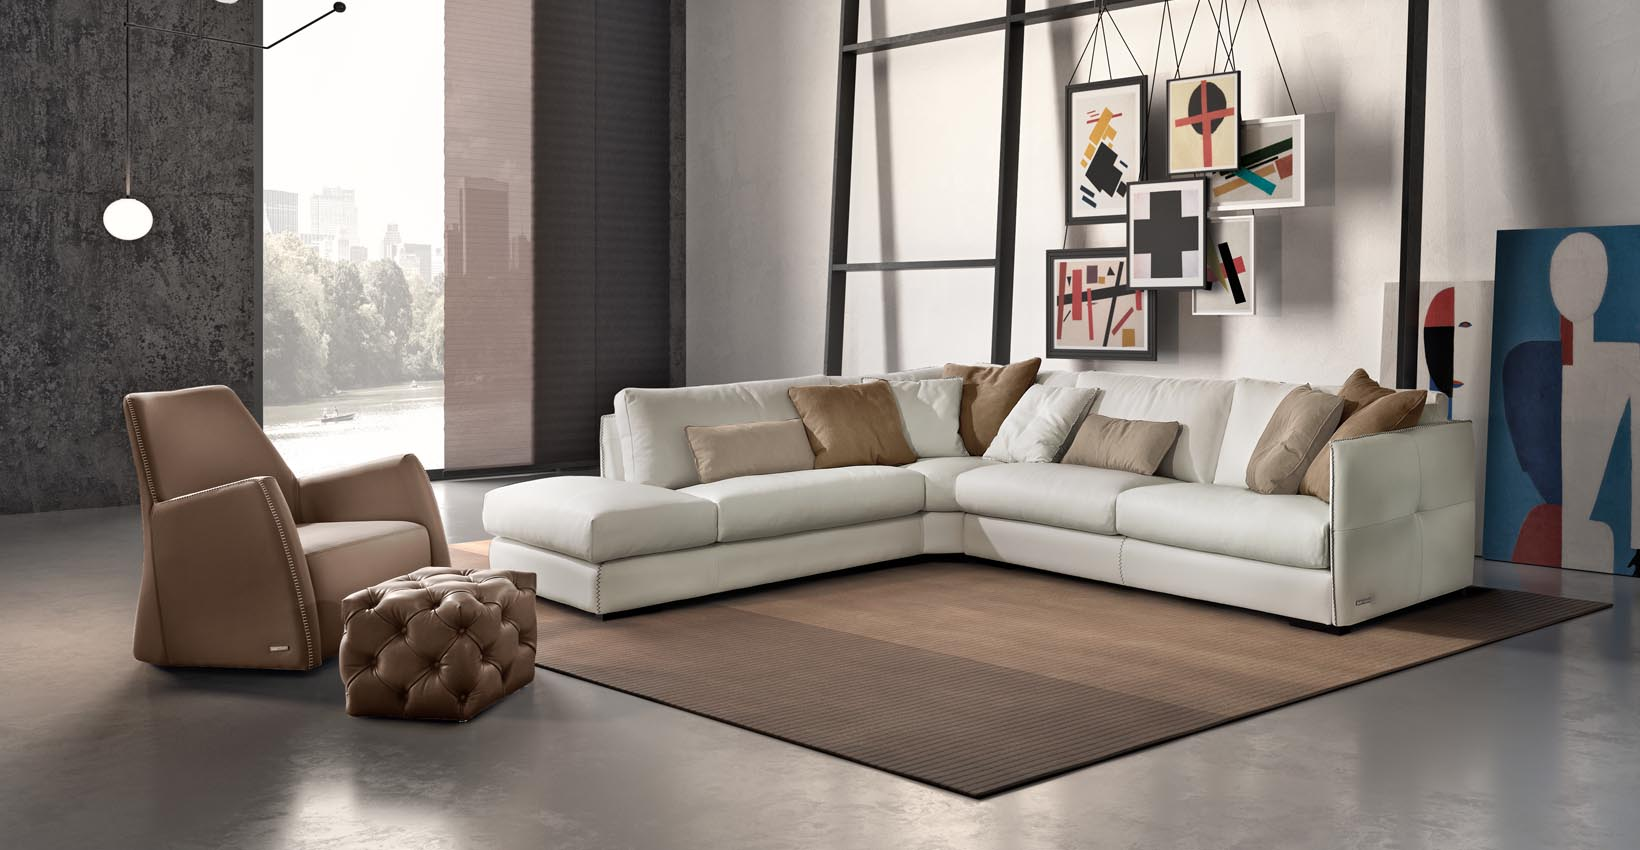 Italian Furniture Toronto Beautiful And Comfortable Italian Furniture Modern